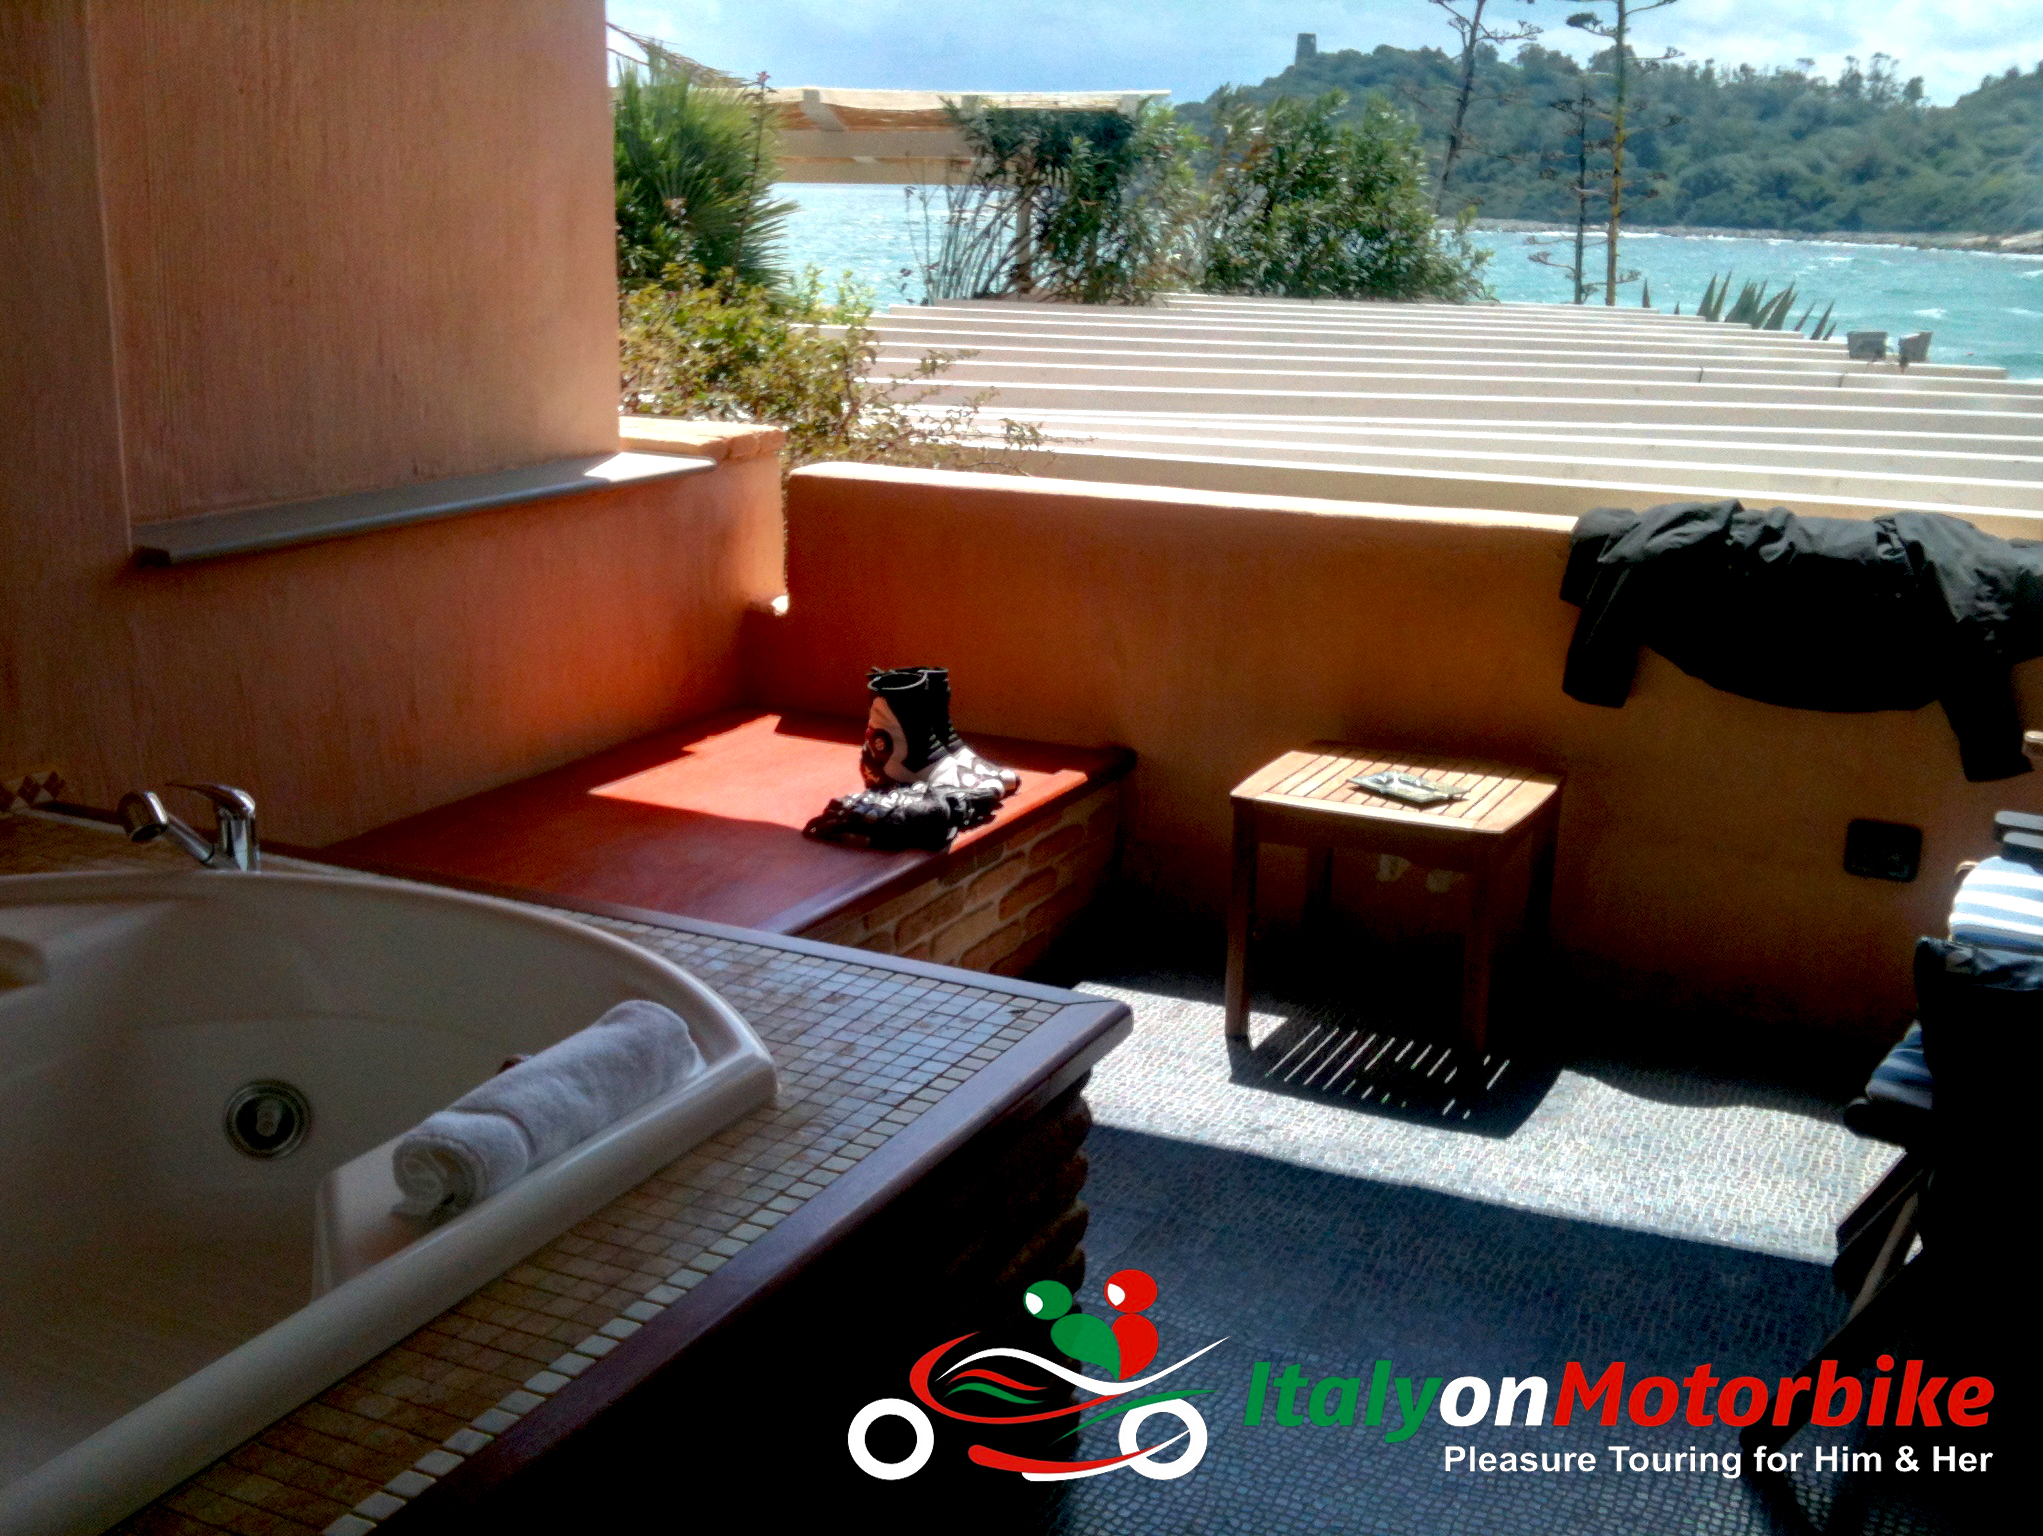 An open air private bathroom with a view on one of our motorcycle trip in Italy